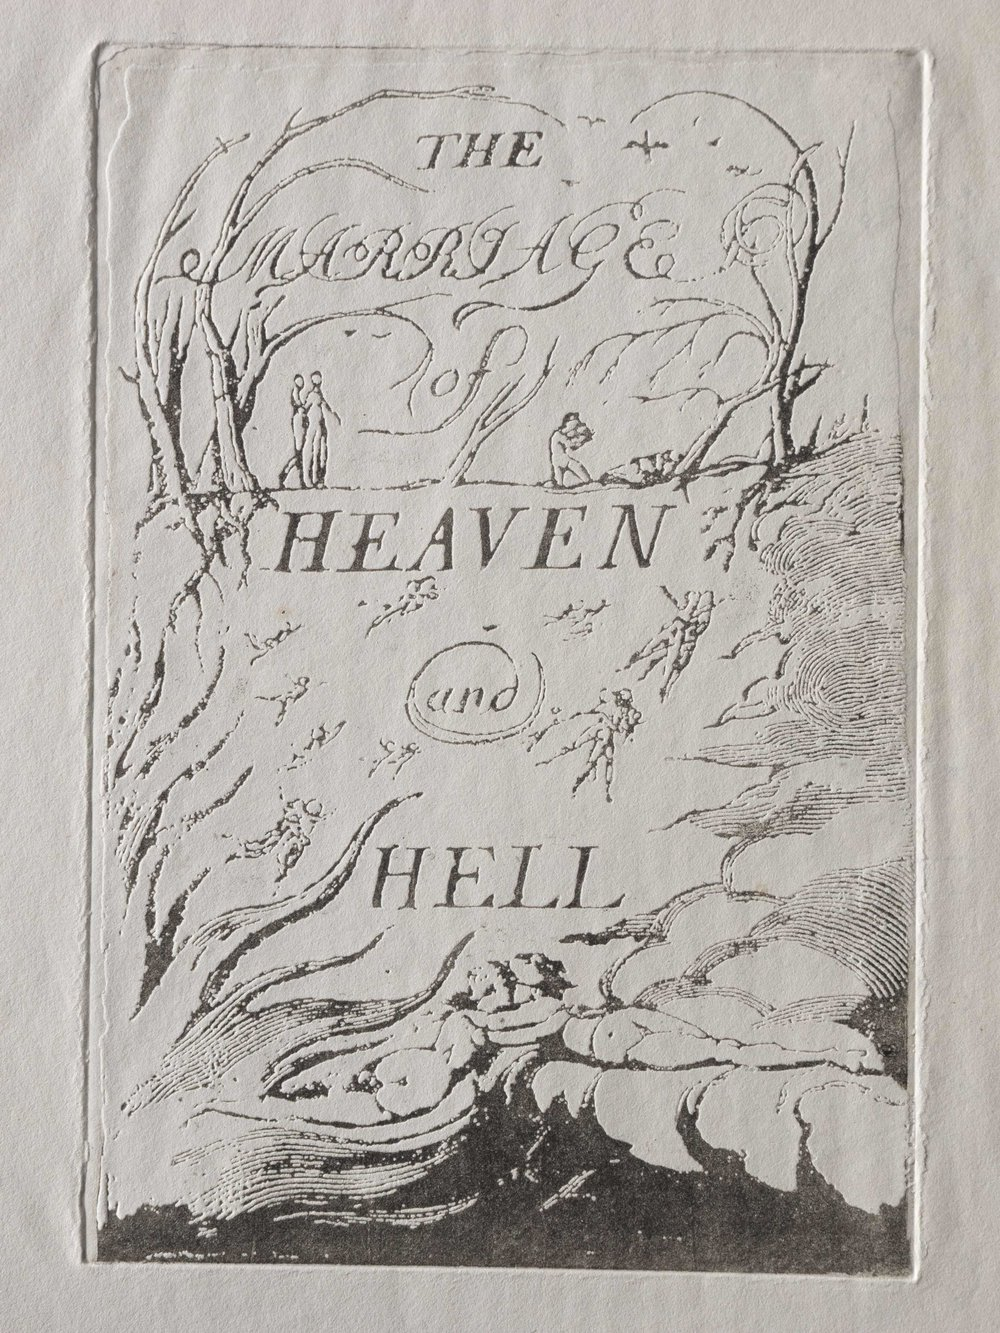 William-Blake-prints-The-Marriage-of-Heaven-and-Hell-One-Rule.jpg